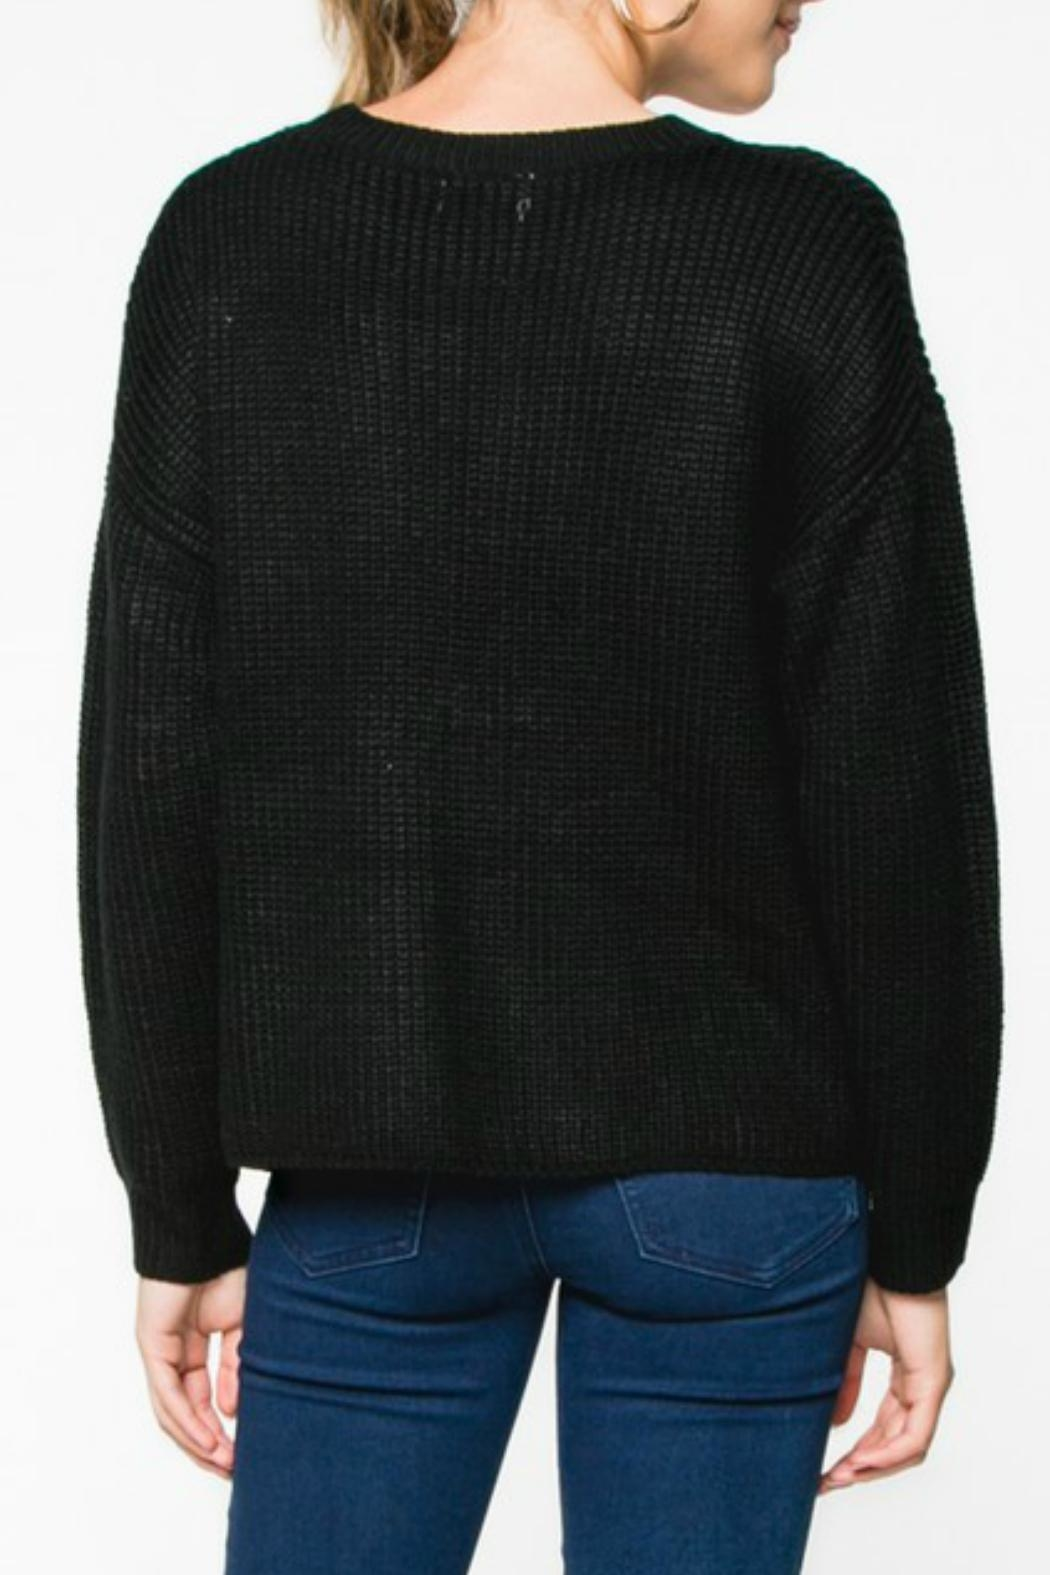 Everly Lace-Up Knit Sweater - Side Cropped Image